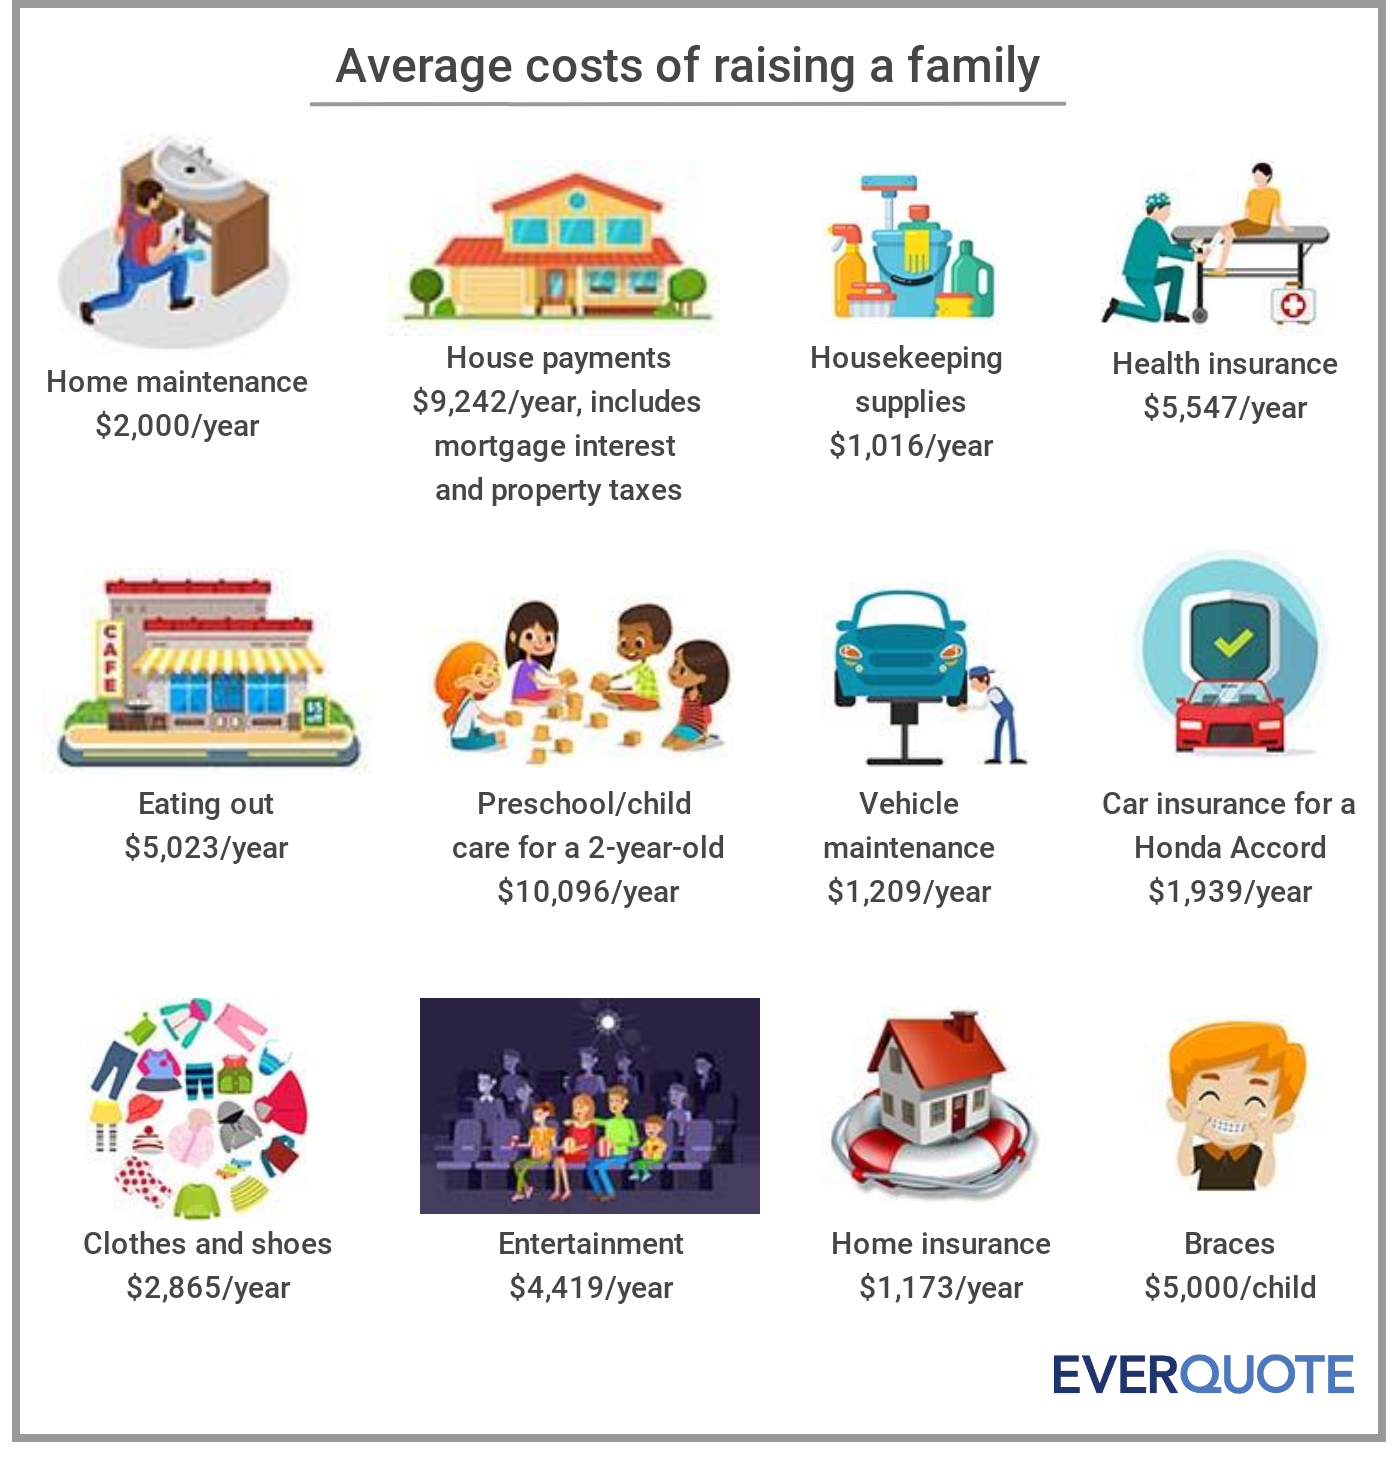 Yearly costs of raising a family